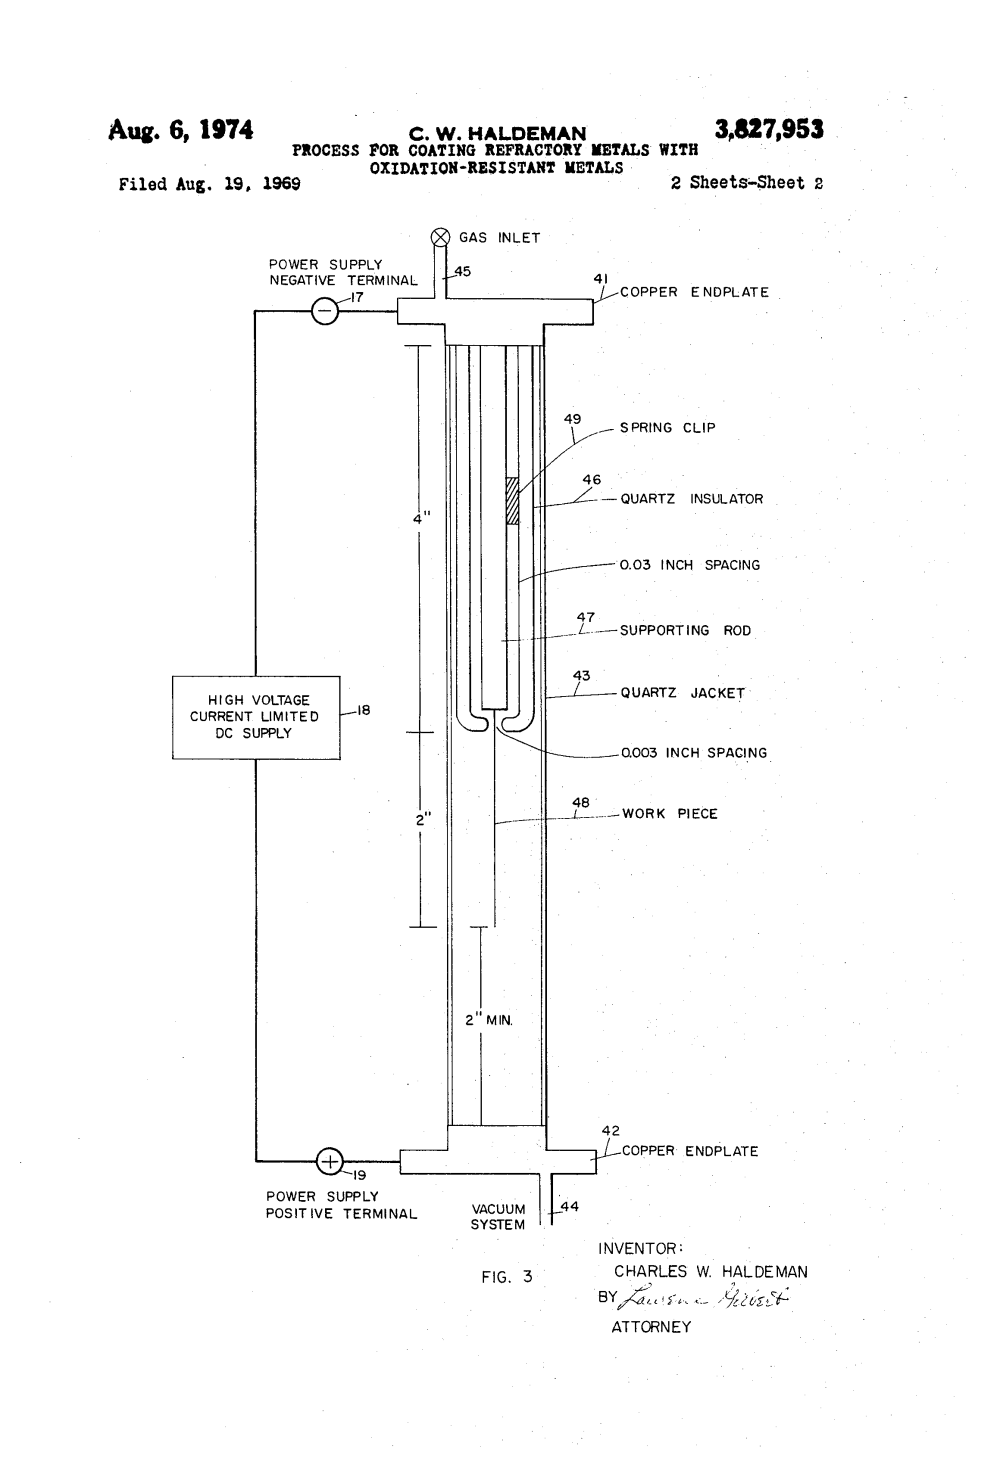 medium resolution of brevet us3827953 process for coating refractory metals with oxidation resistant metals google brevets